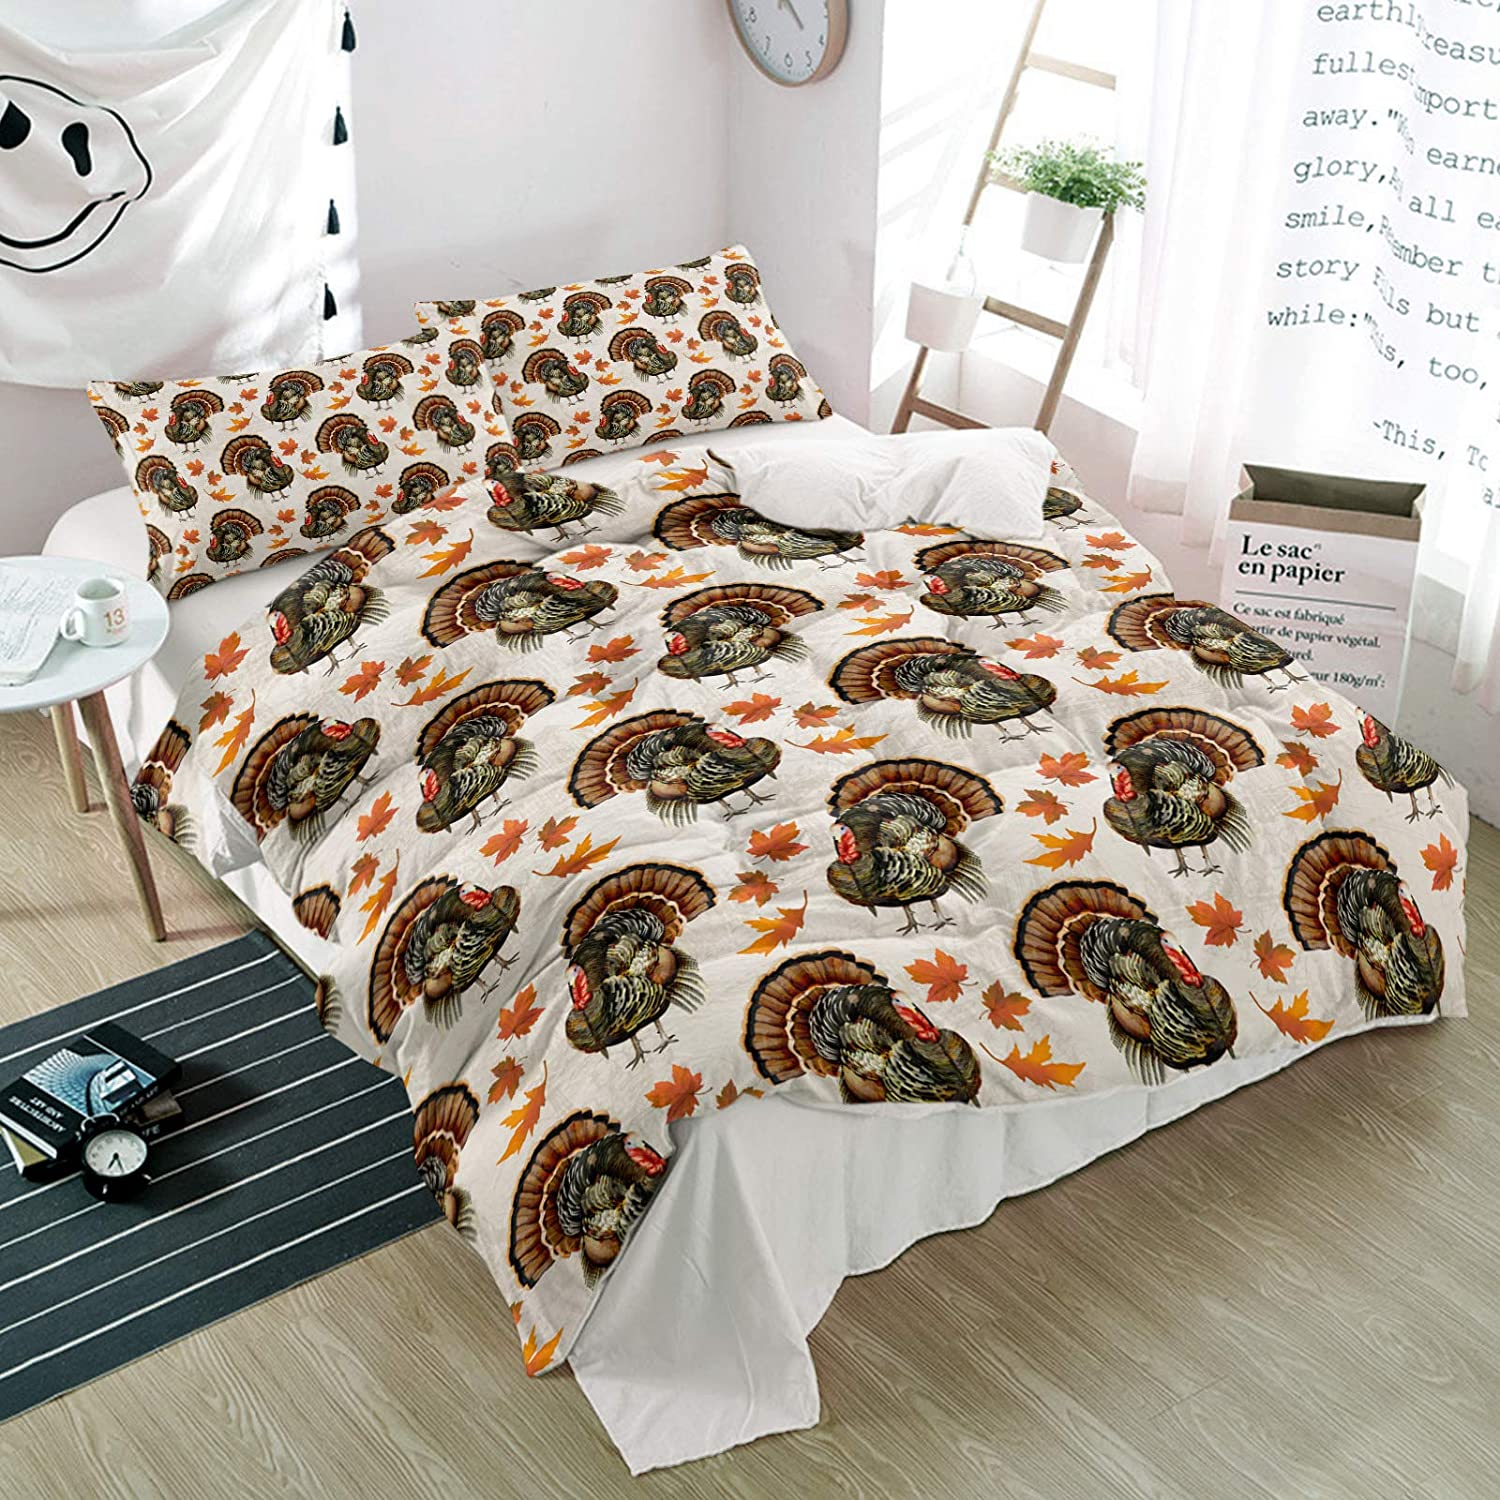 WARM TOUR Complete Free Shipping 3 Pieces Duvet Max 42% OFF Cover Day Sets Full Animal Thanksgiving